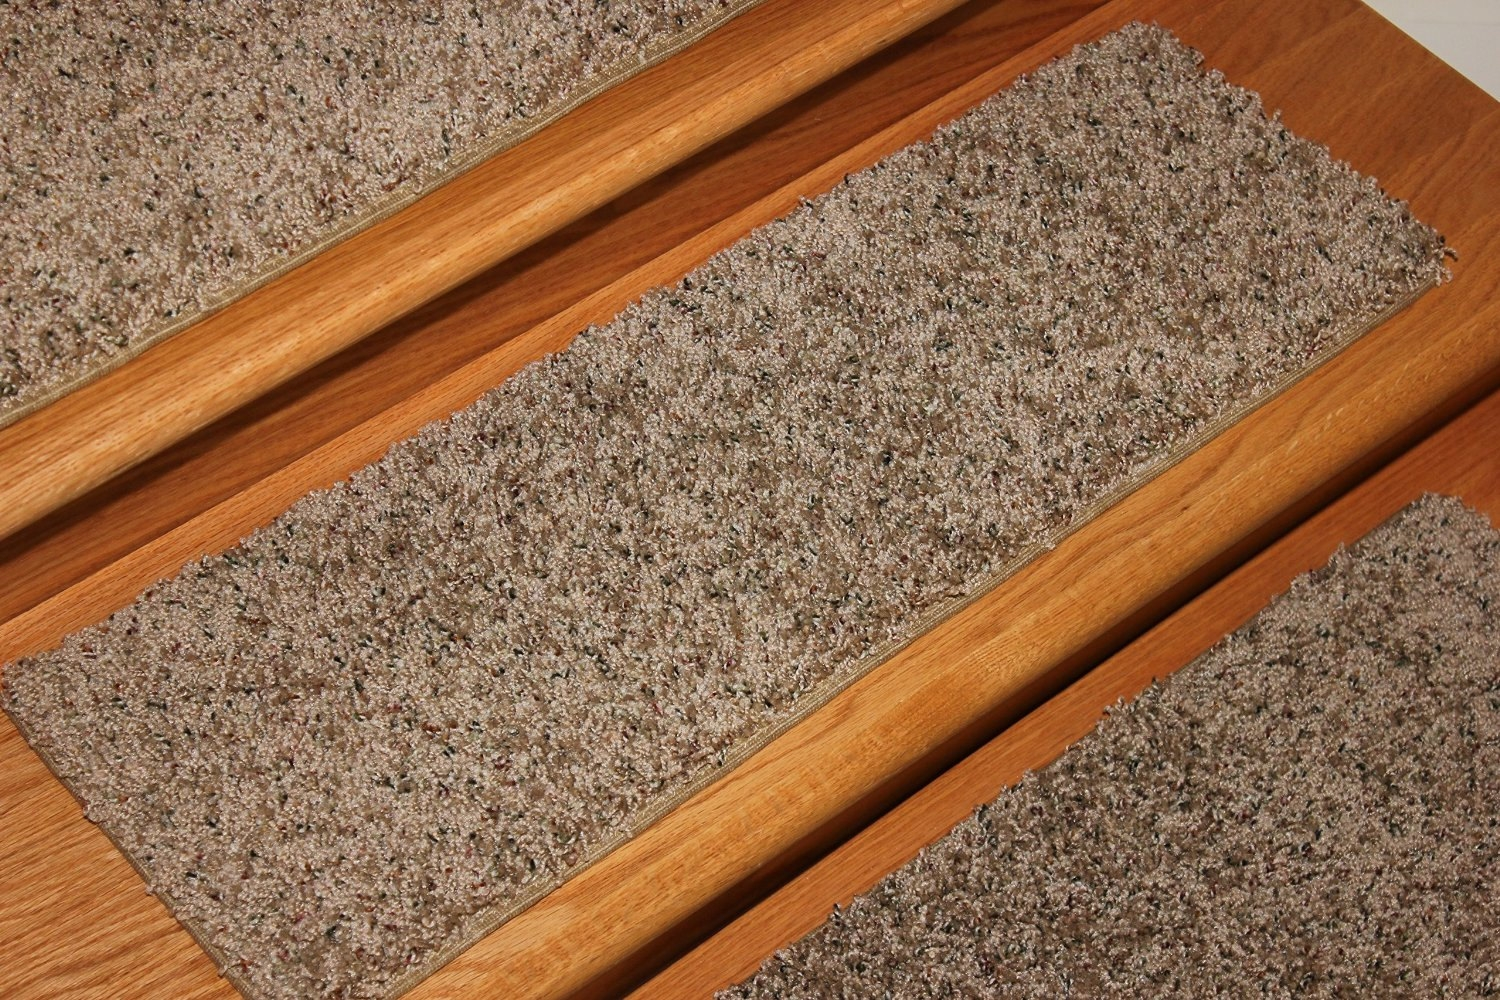 Stair Treads Etsy For Set Of 13 Stair Tread Rugs (View 3 of 15)